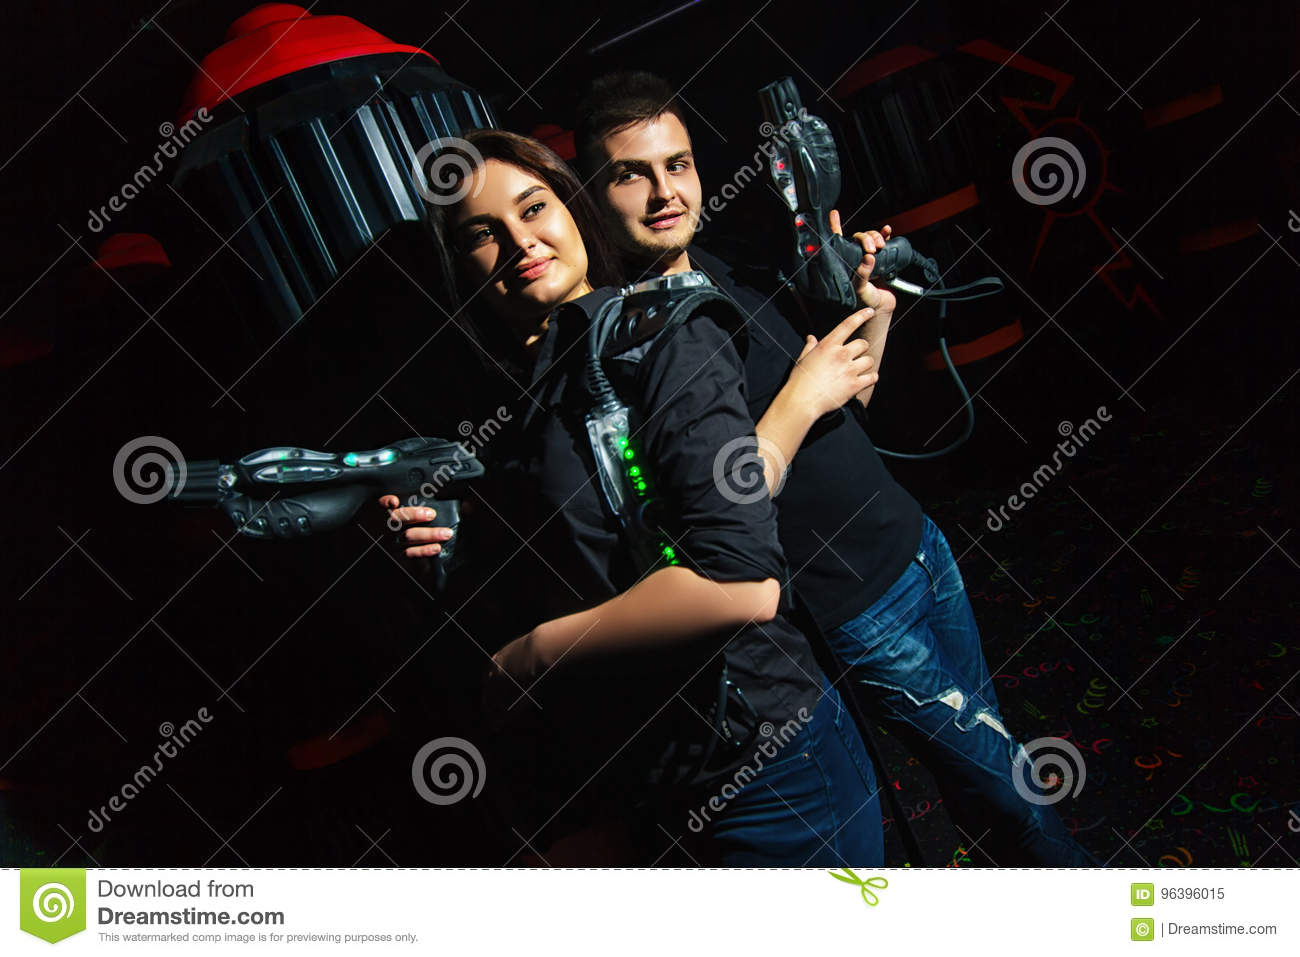 Laser tag girl and guy